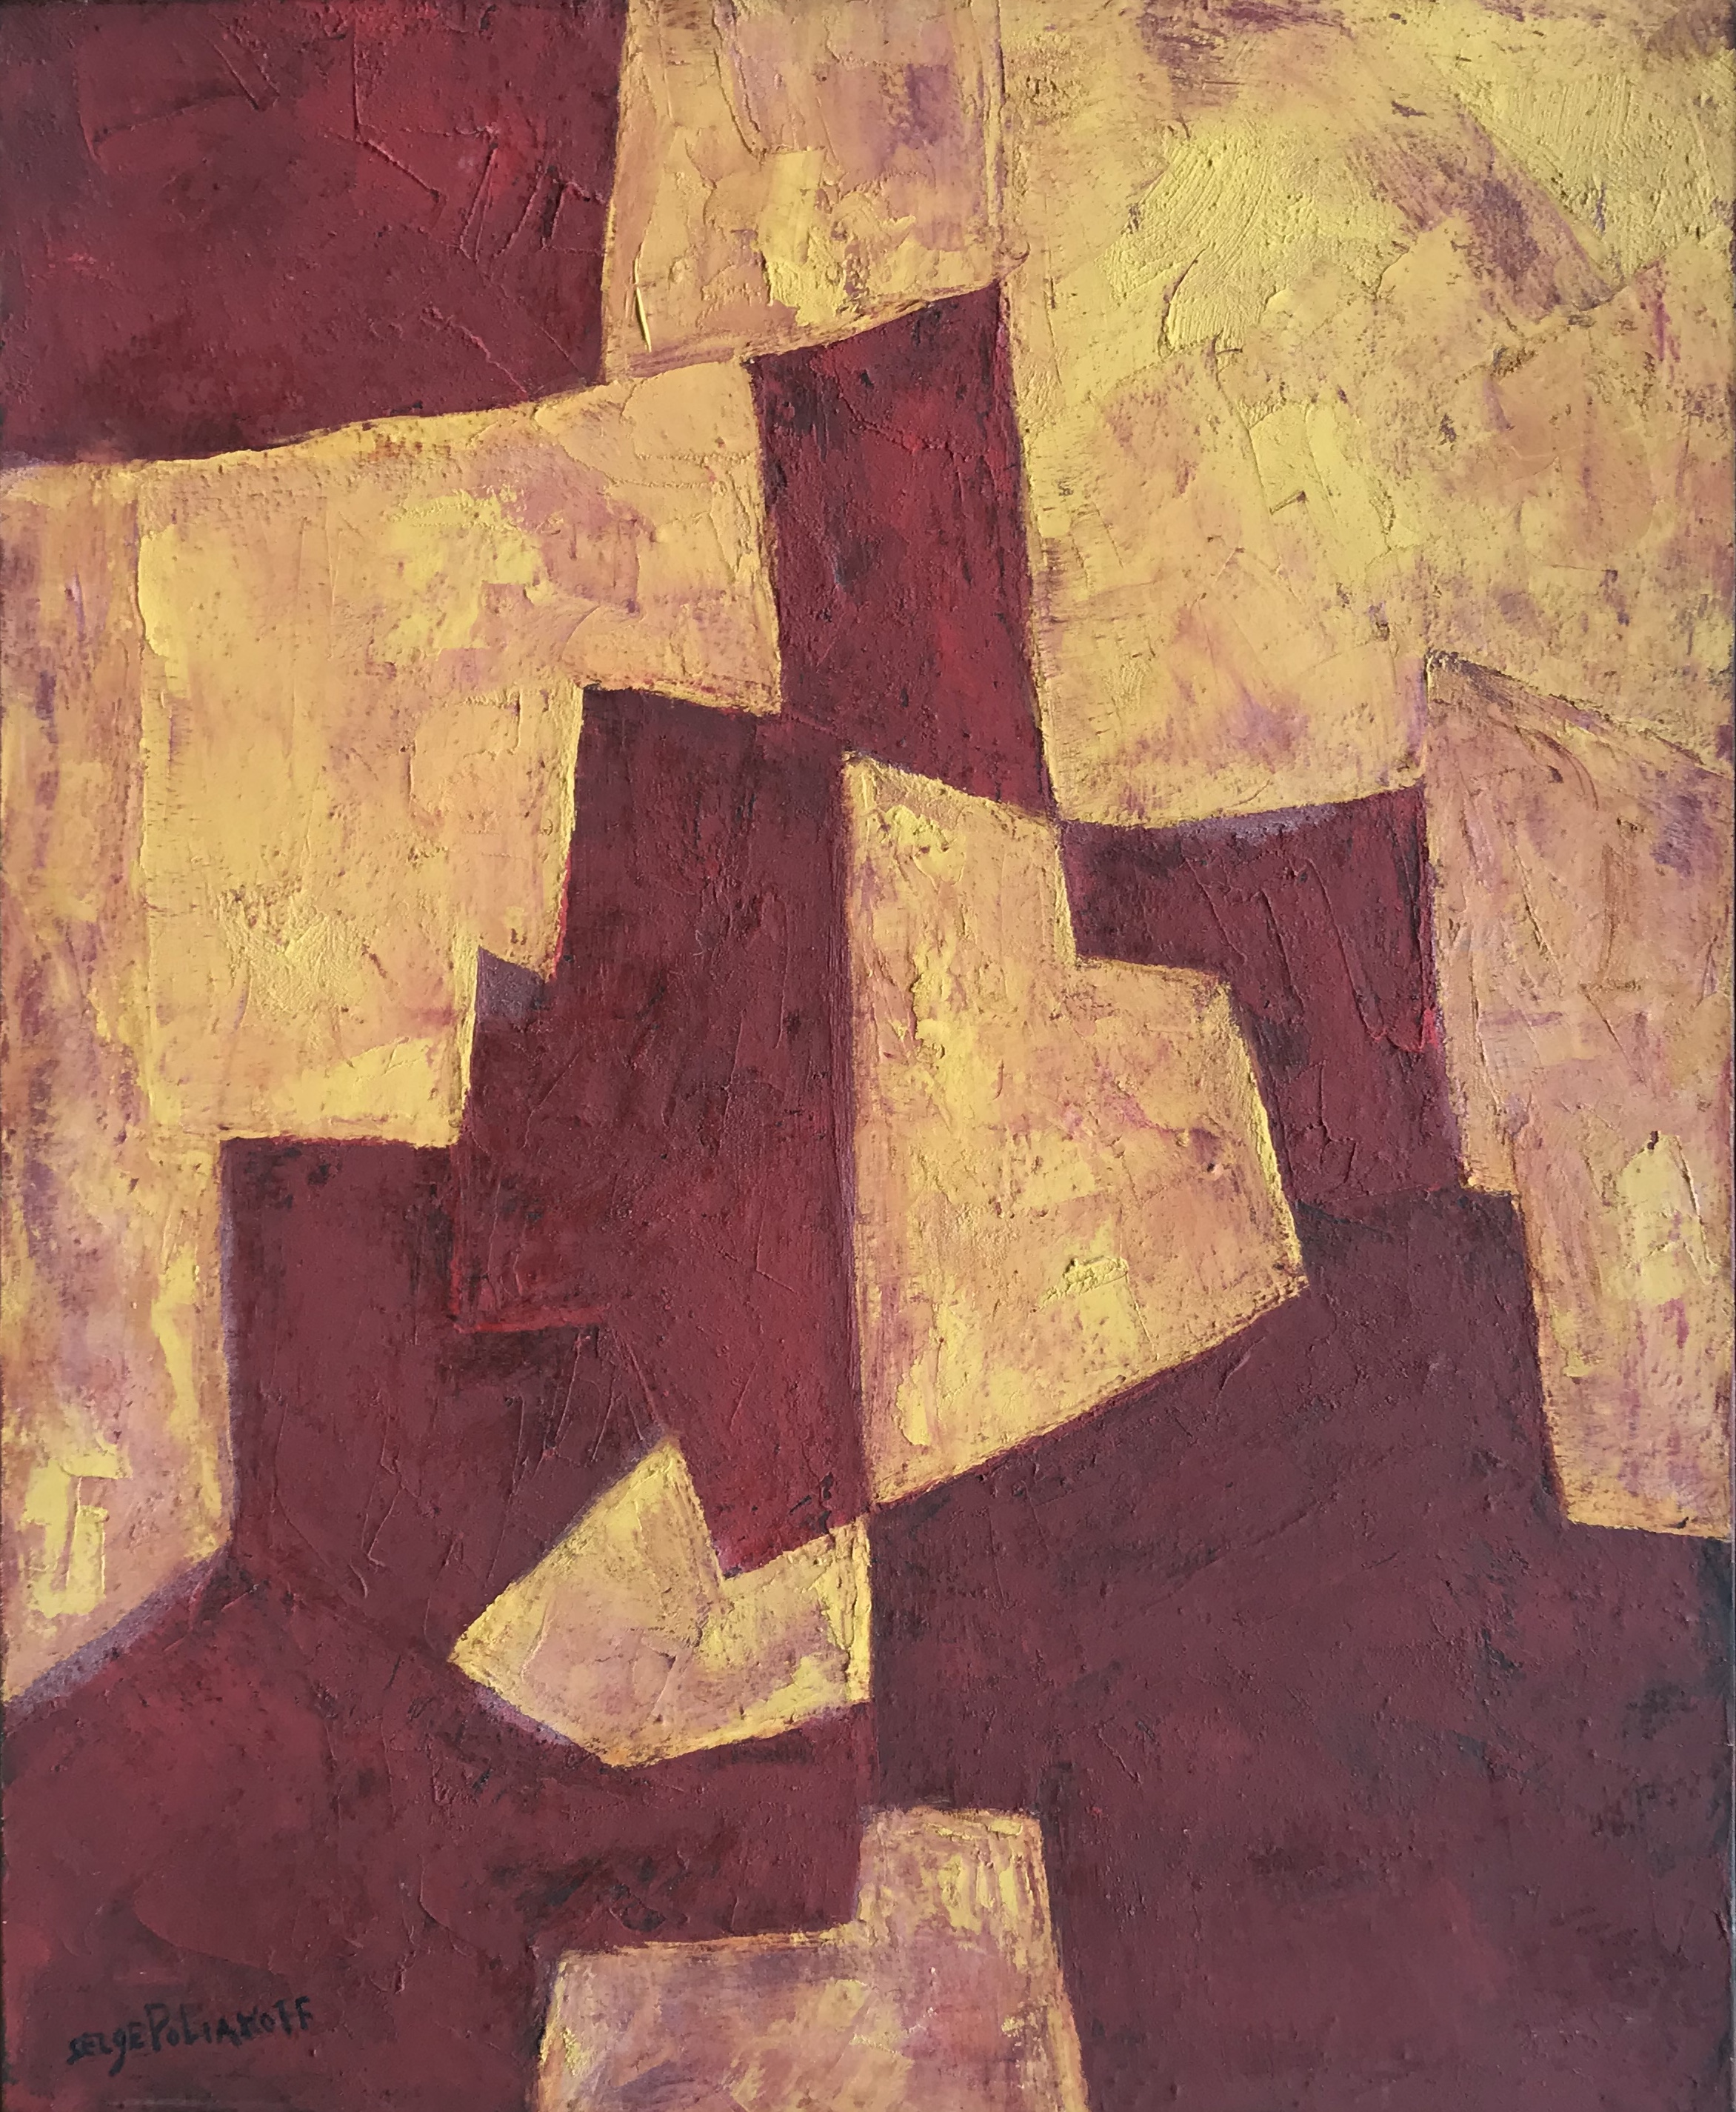 Serge Poliakoff - Composition abstraite, 1958